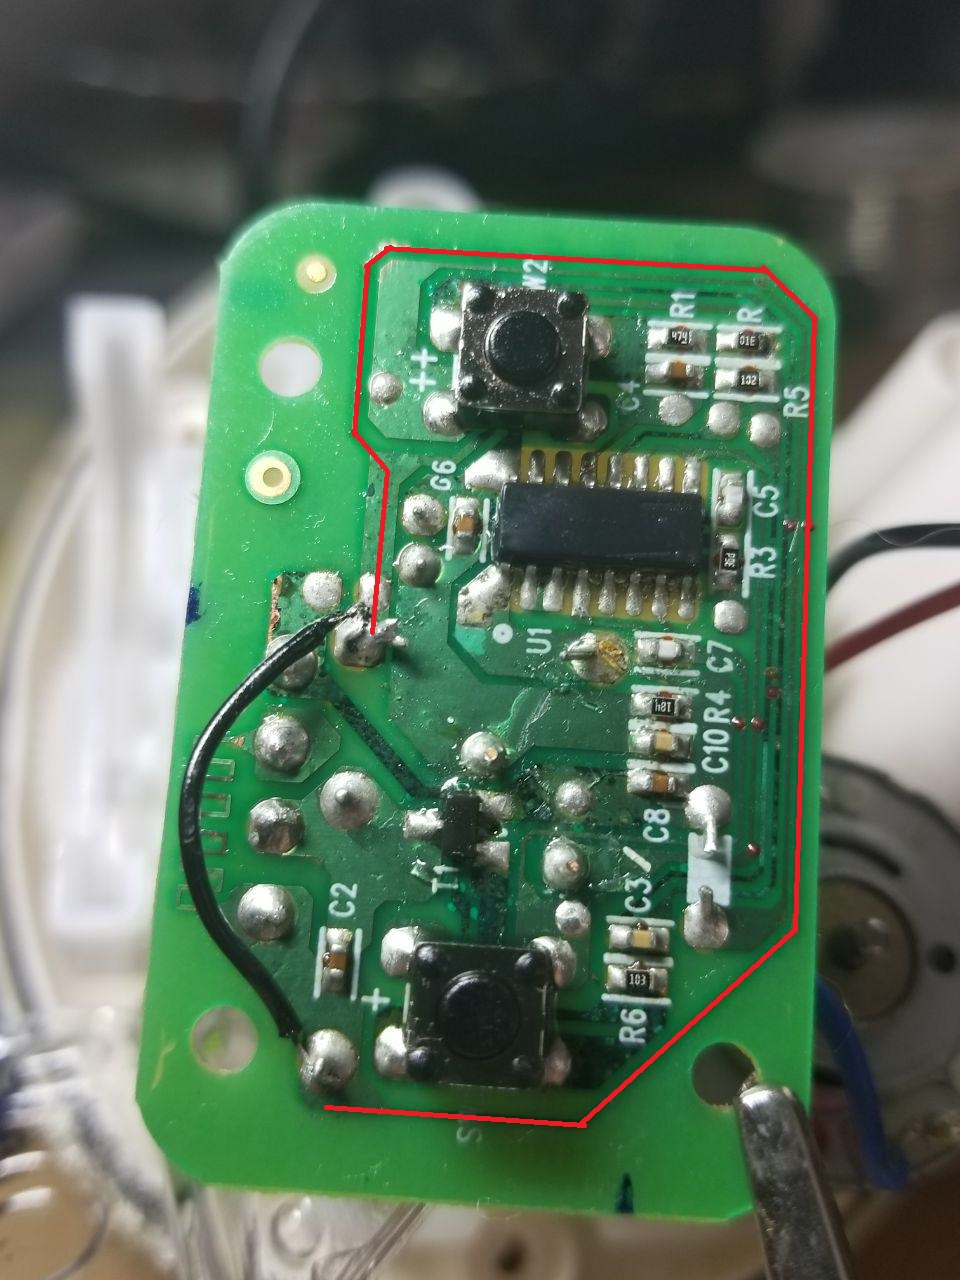 Small Electronic Repair Scrubbing Bubbles Automatic Shower Cleaner Circuit Board Coating I Followed The Checking For Voltage Between 1 And 4 Has A Conformal So Make Sure Youre Touching Metal When You Check